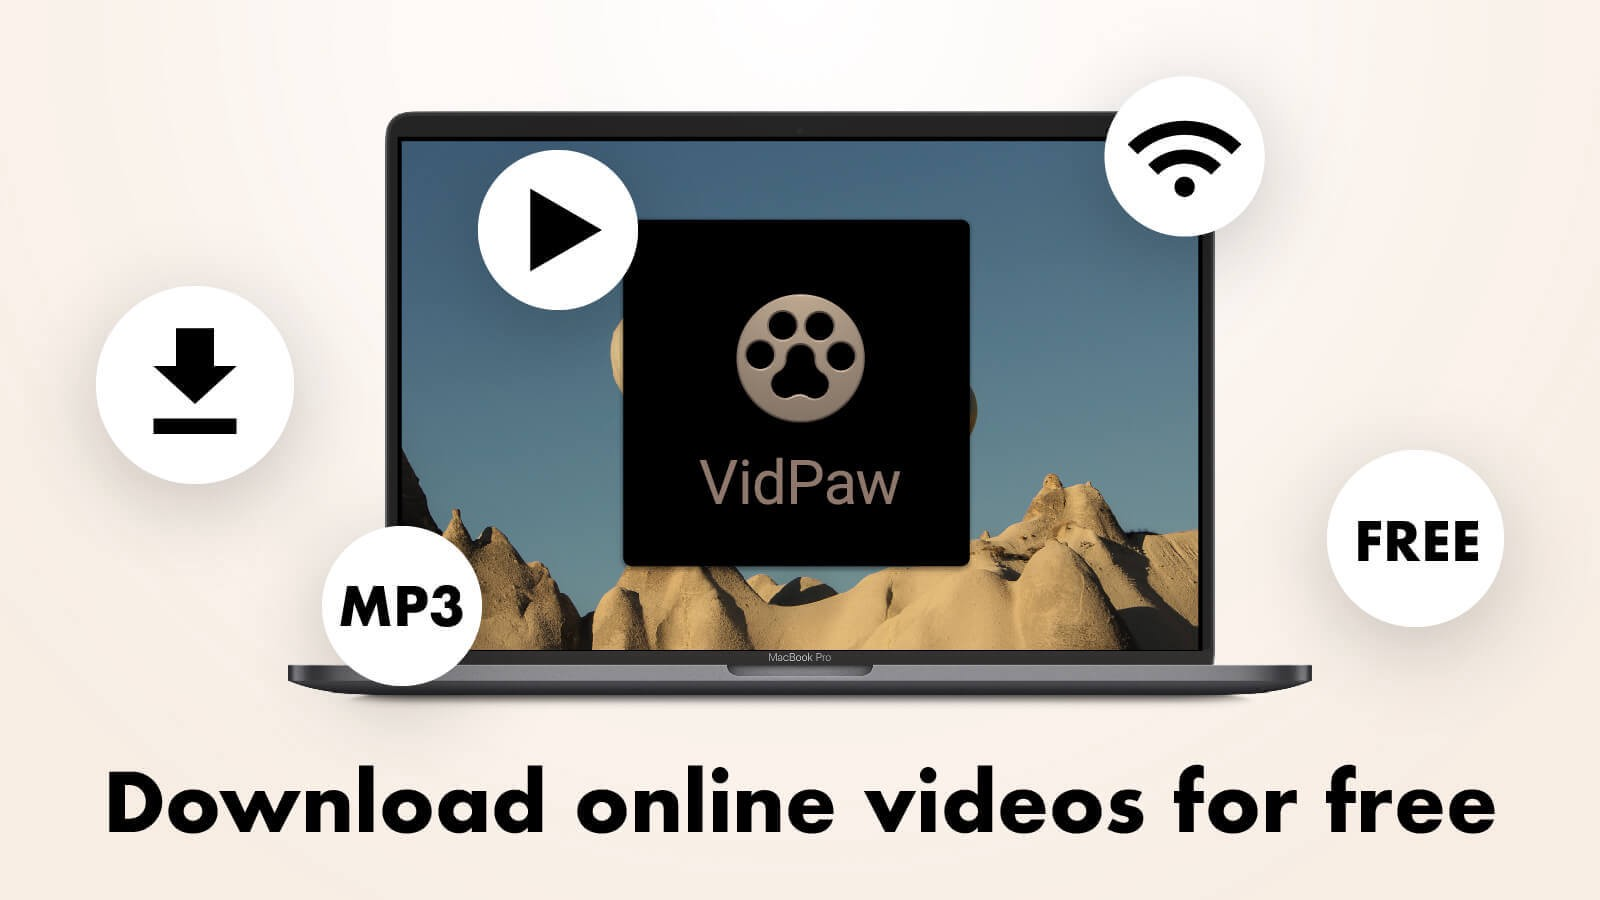 vidpaw downloading online videos for free